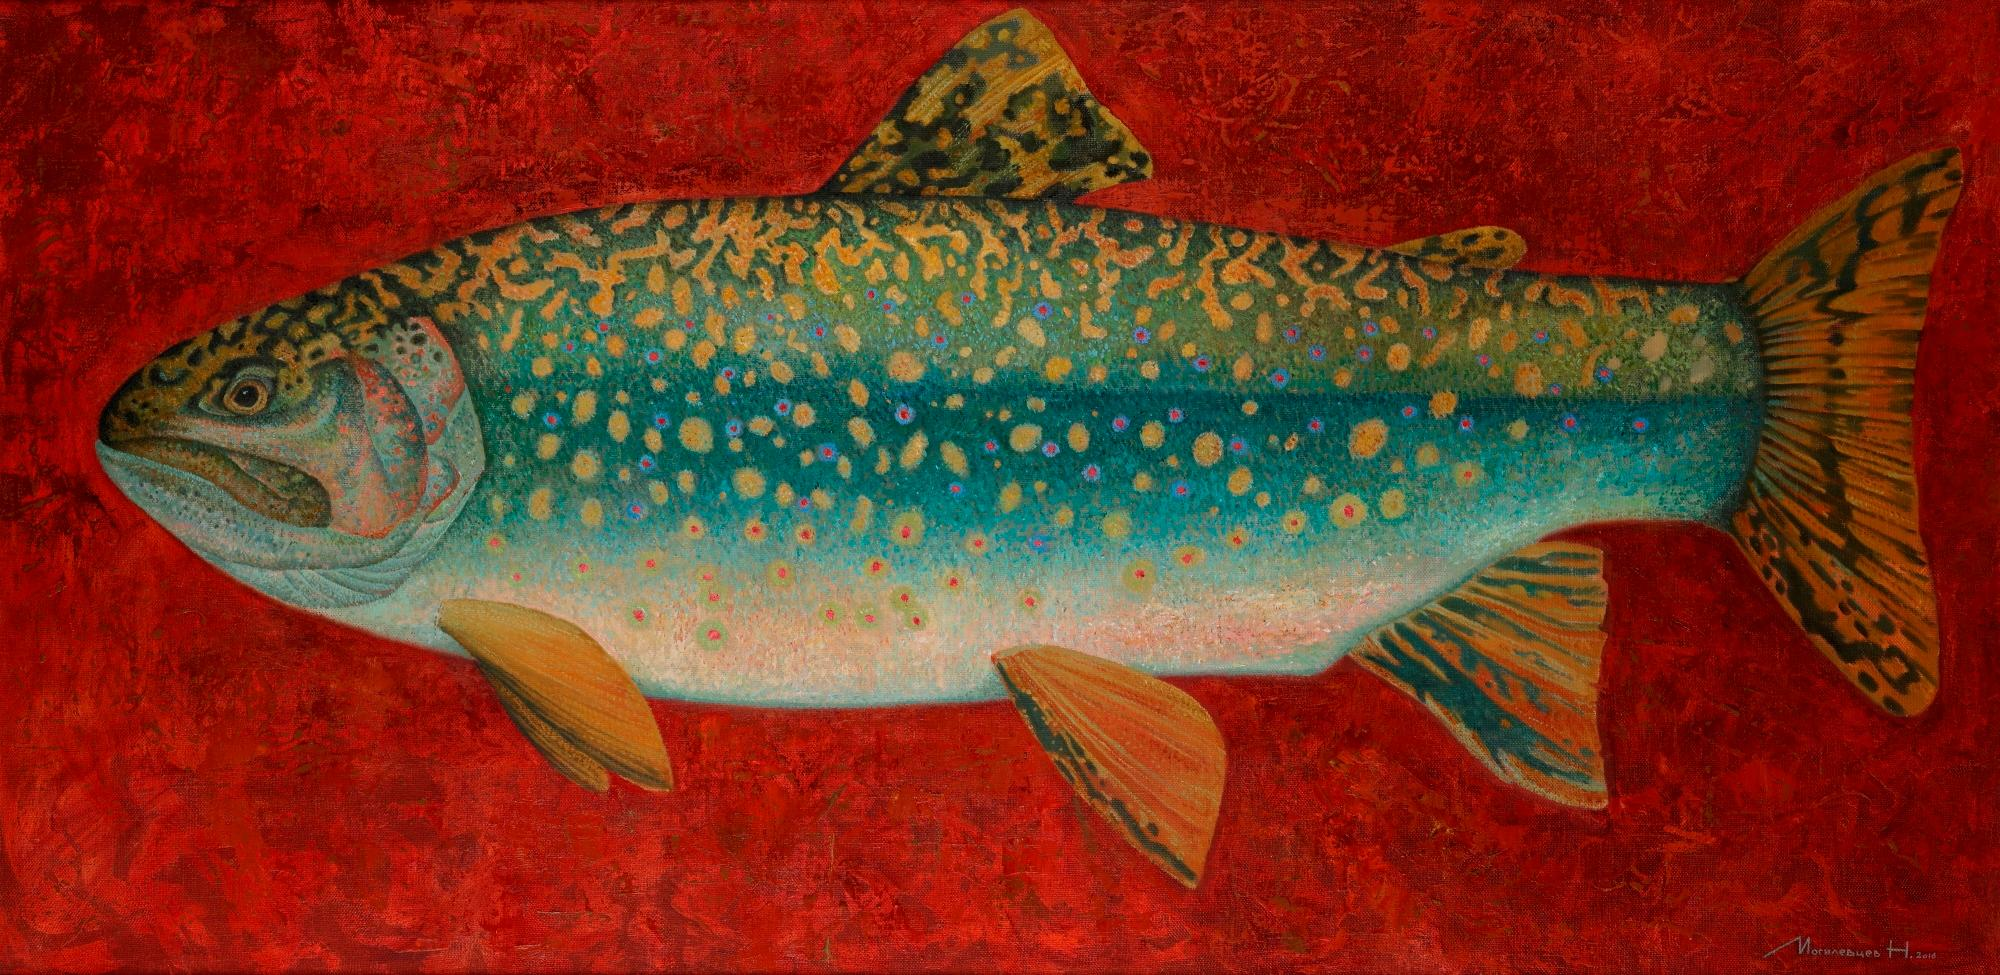 Brook Trout- 21st Century Contemporary Oil Painting on canvas of a Fish